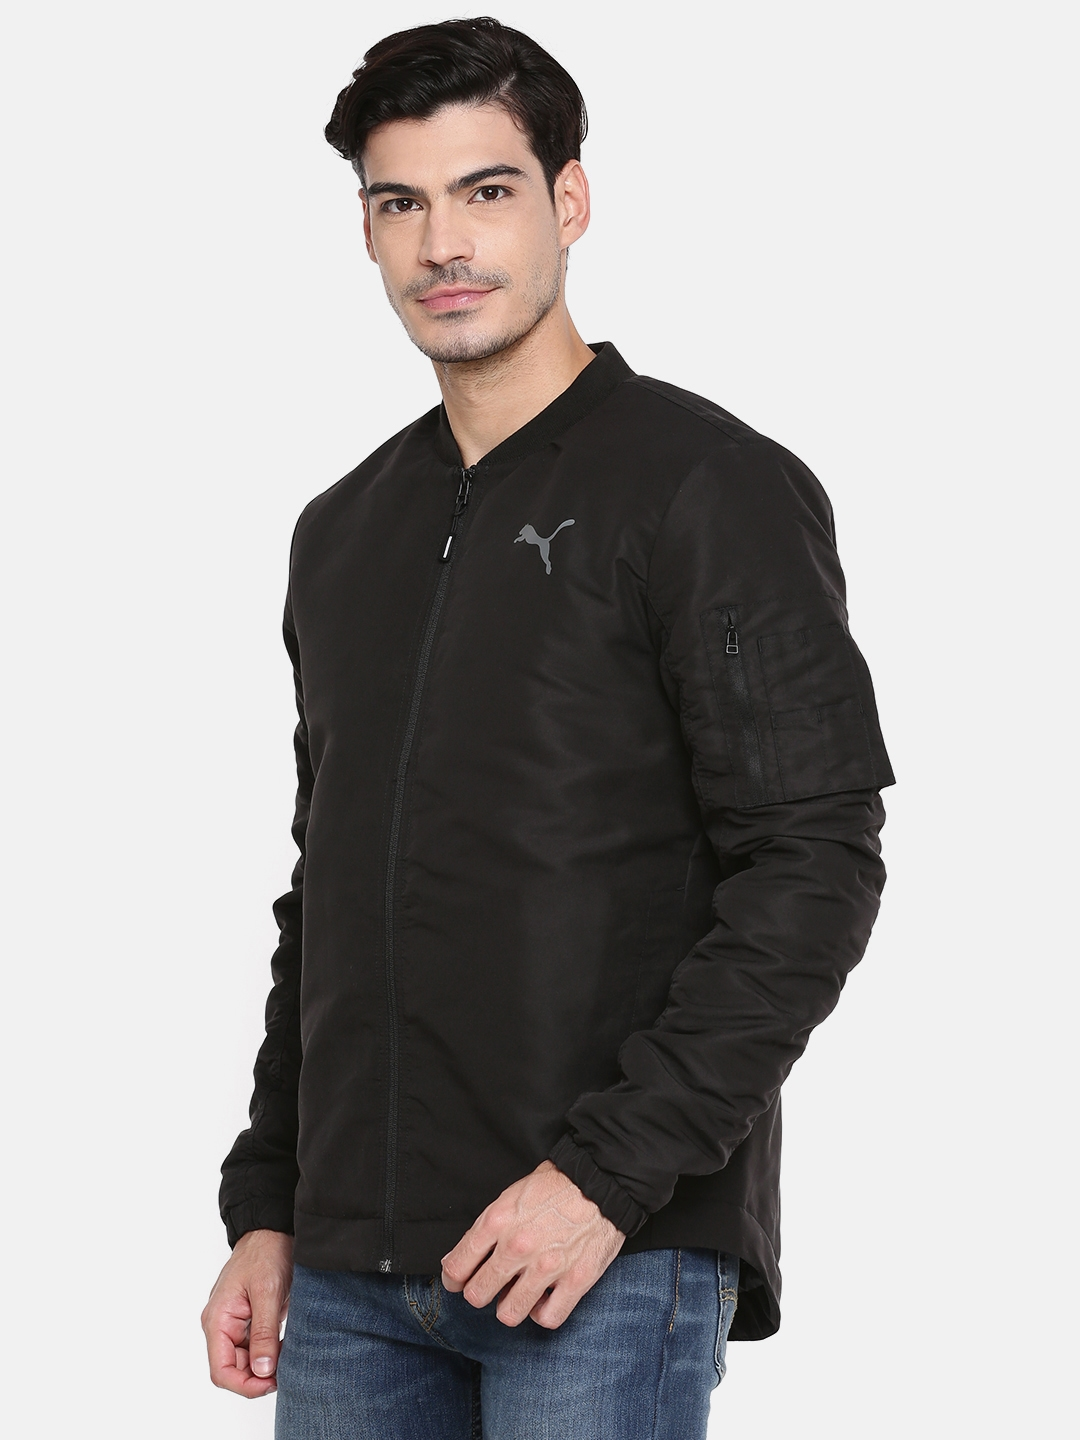 766806a51 Puma Men Black Style Bomber Solid Stand Collar Bomber Jacket